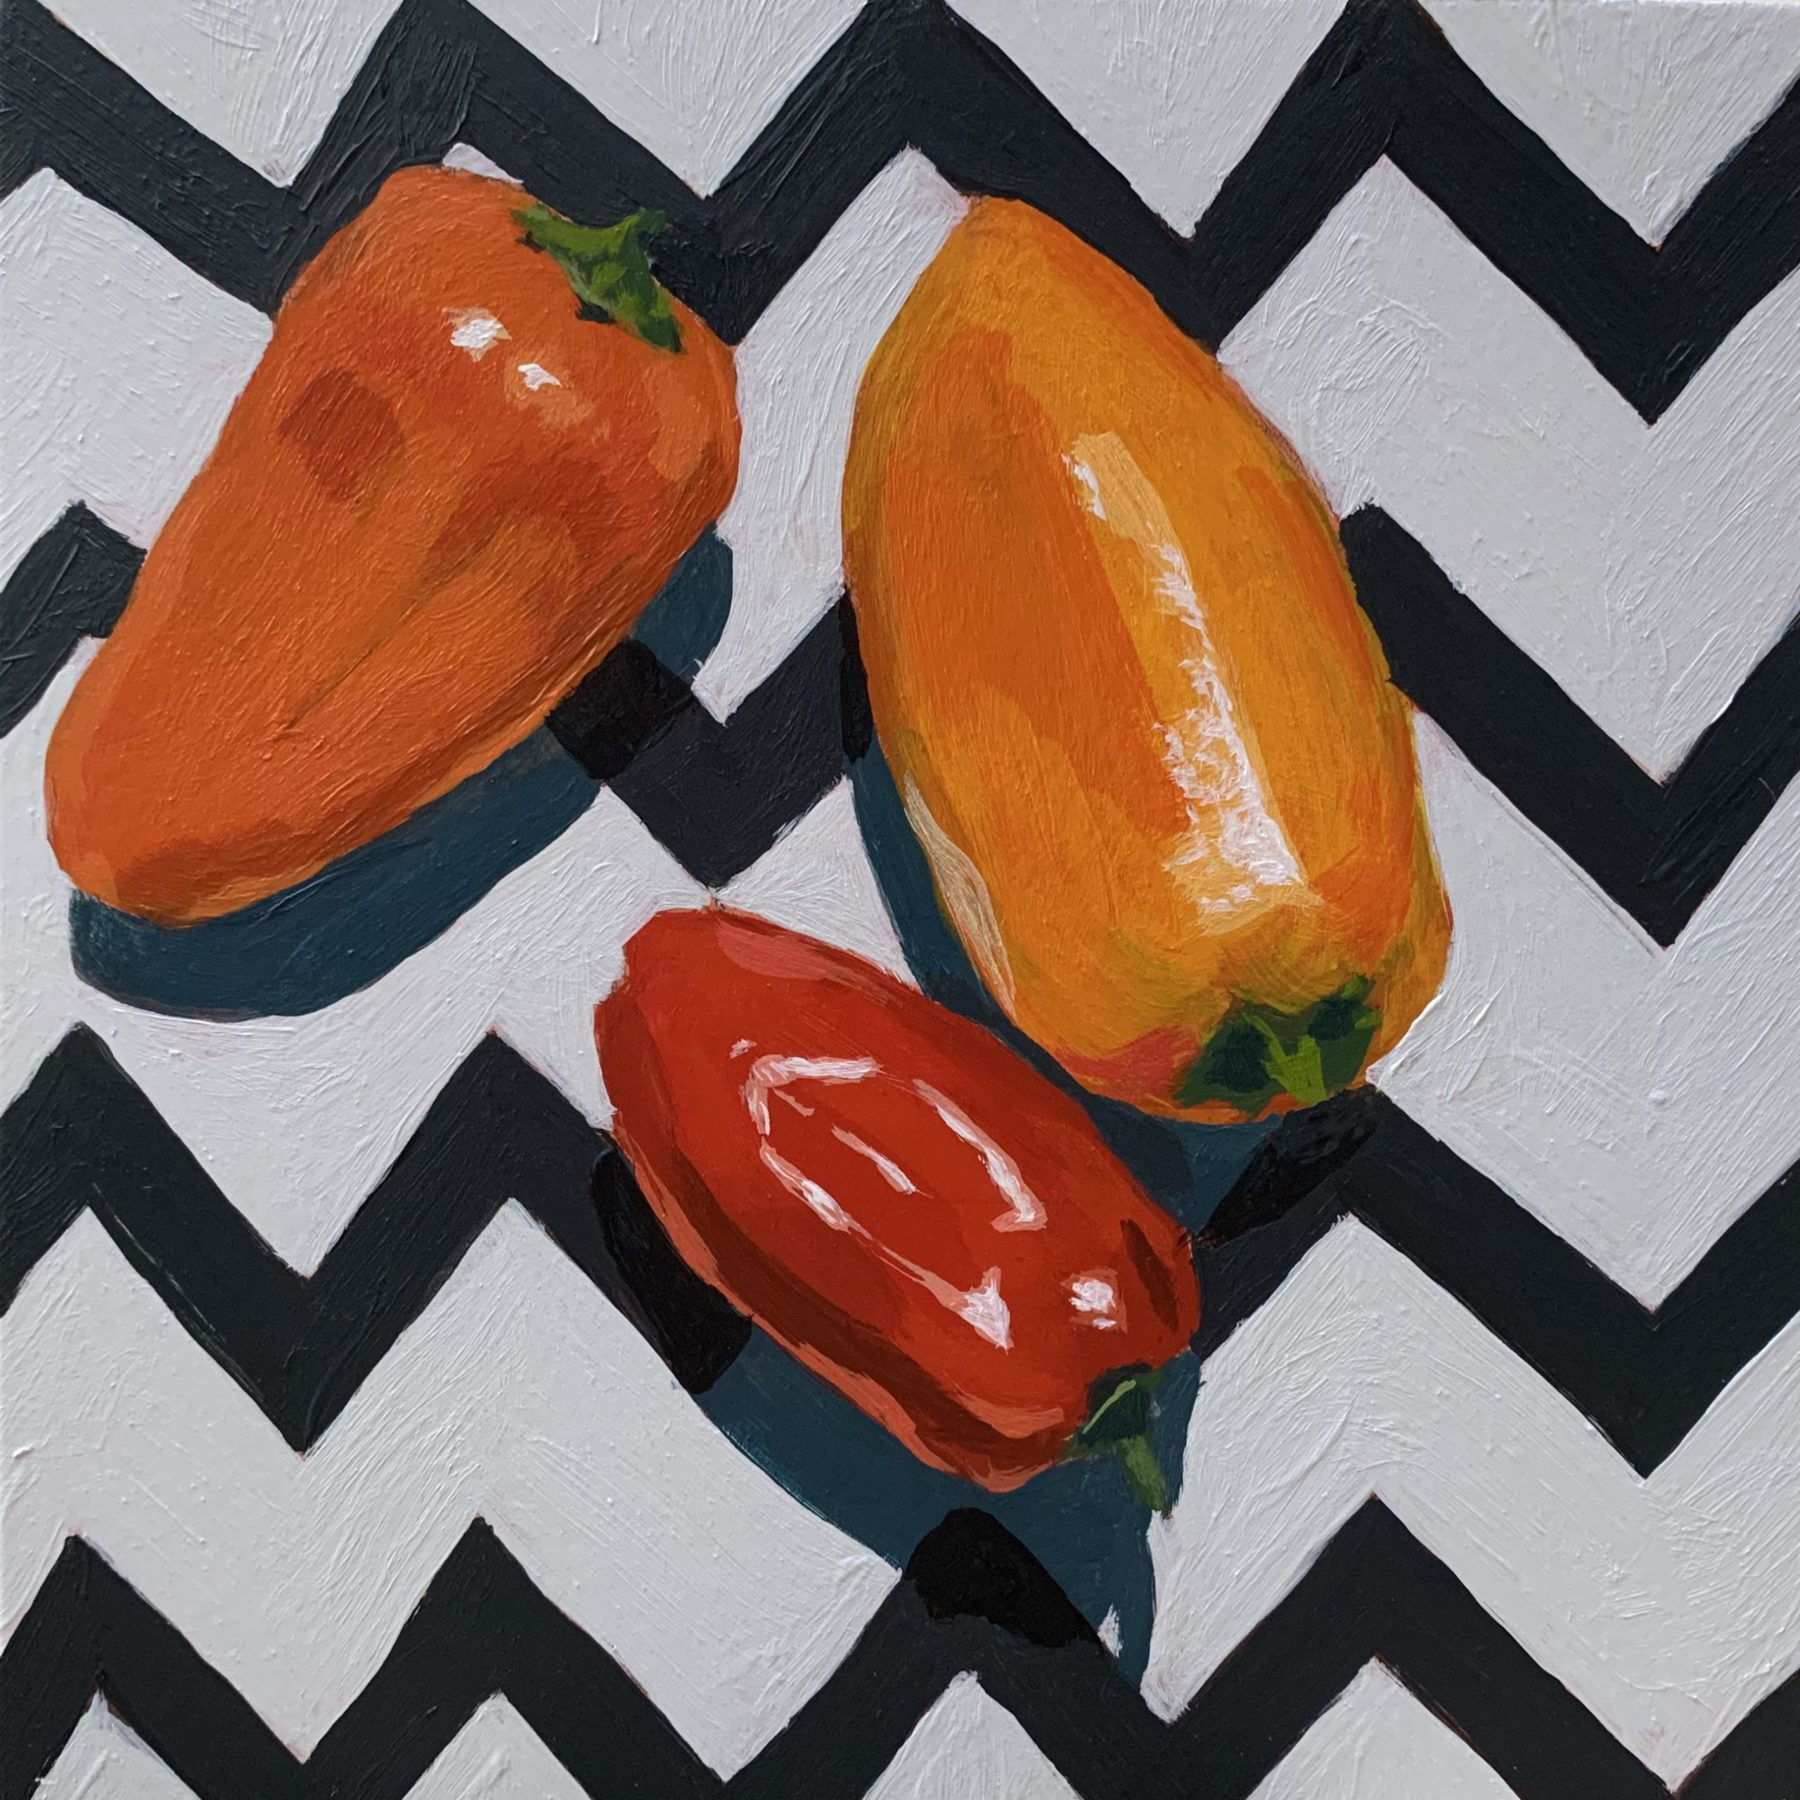 peppers on chevron 2, pepper painting, chevron